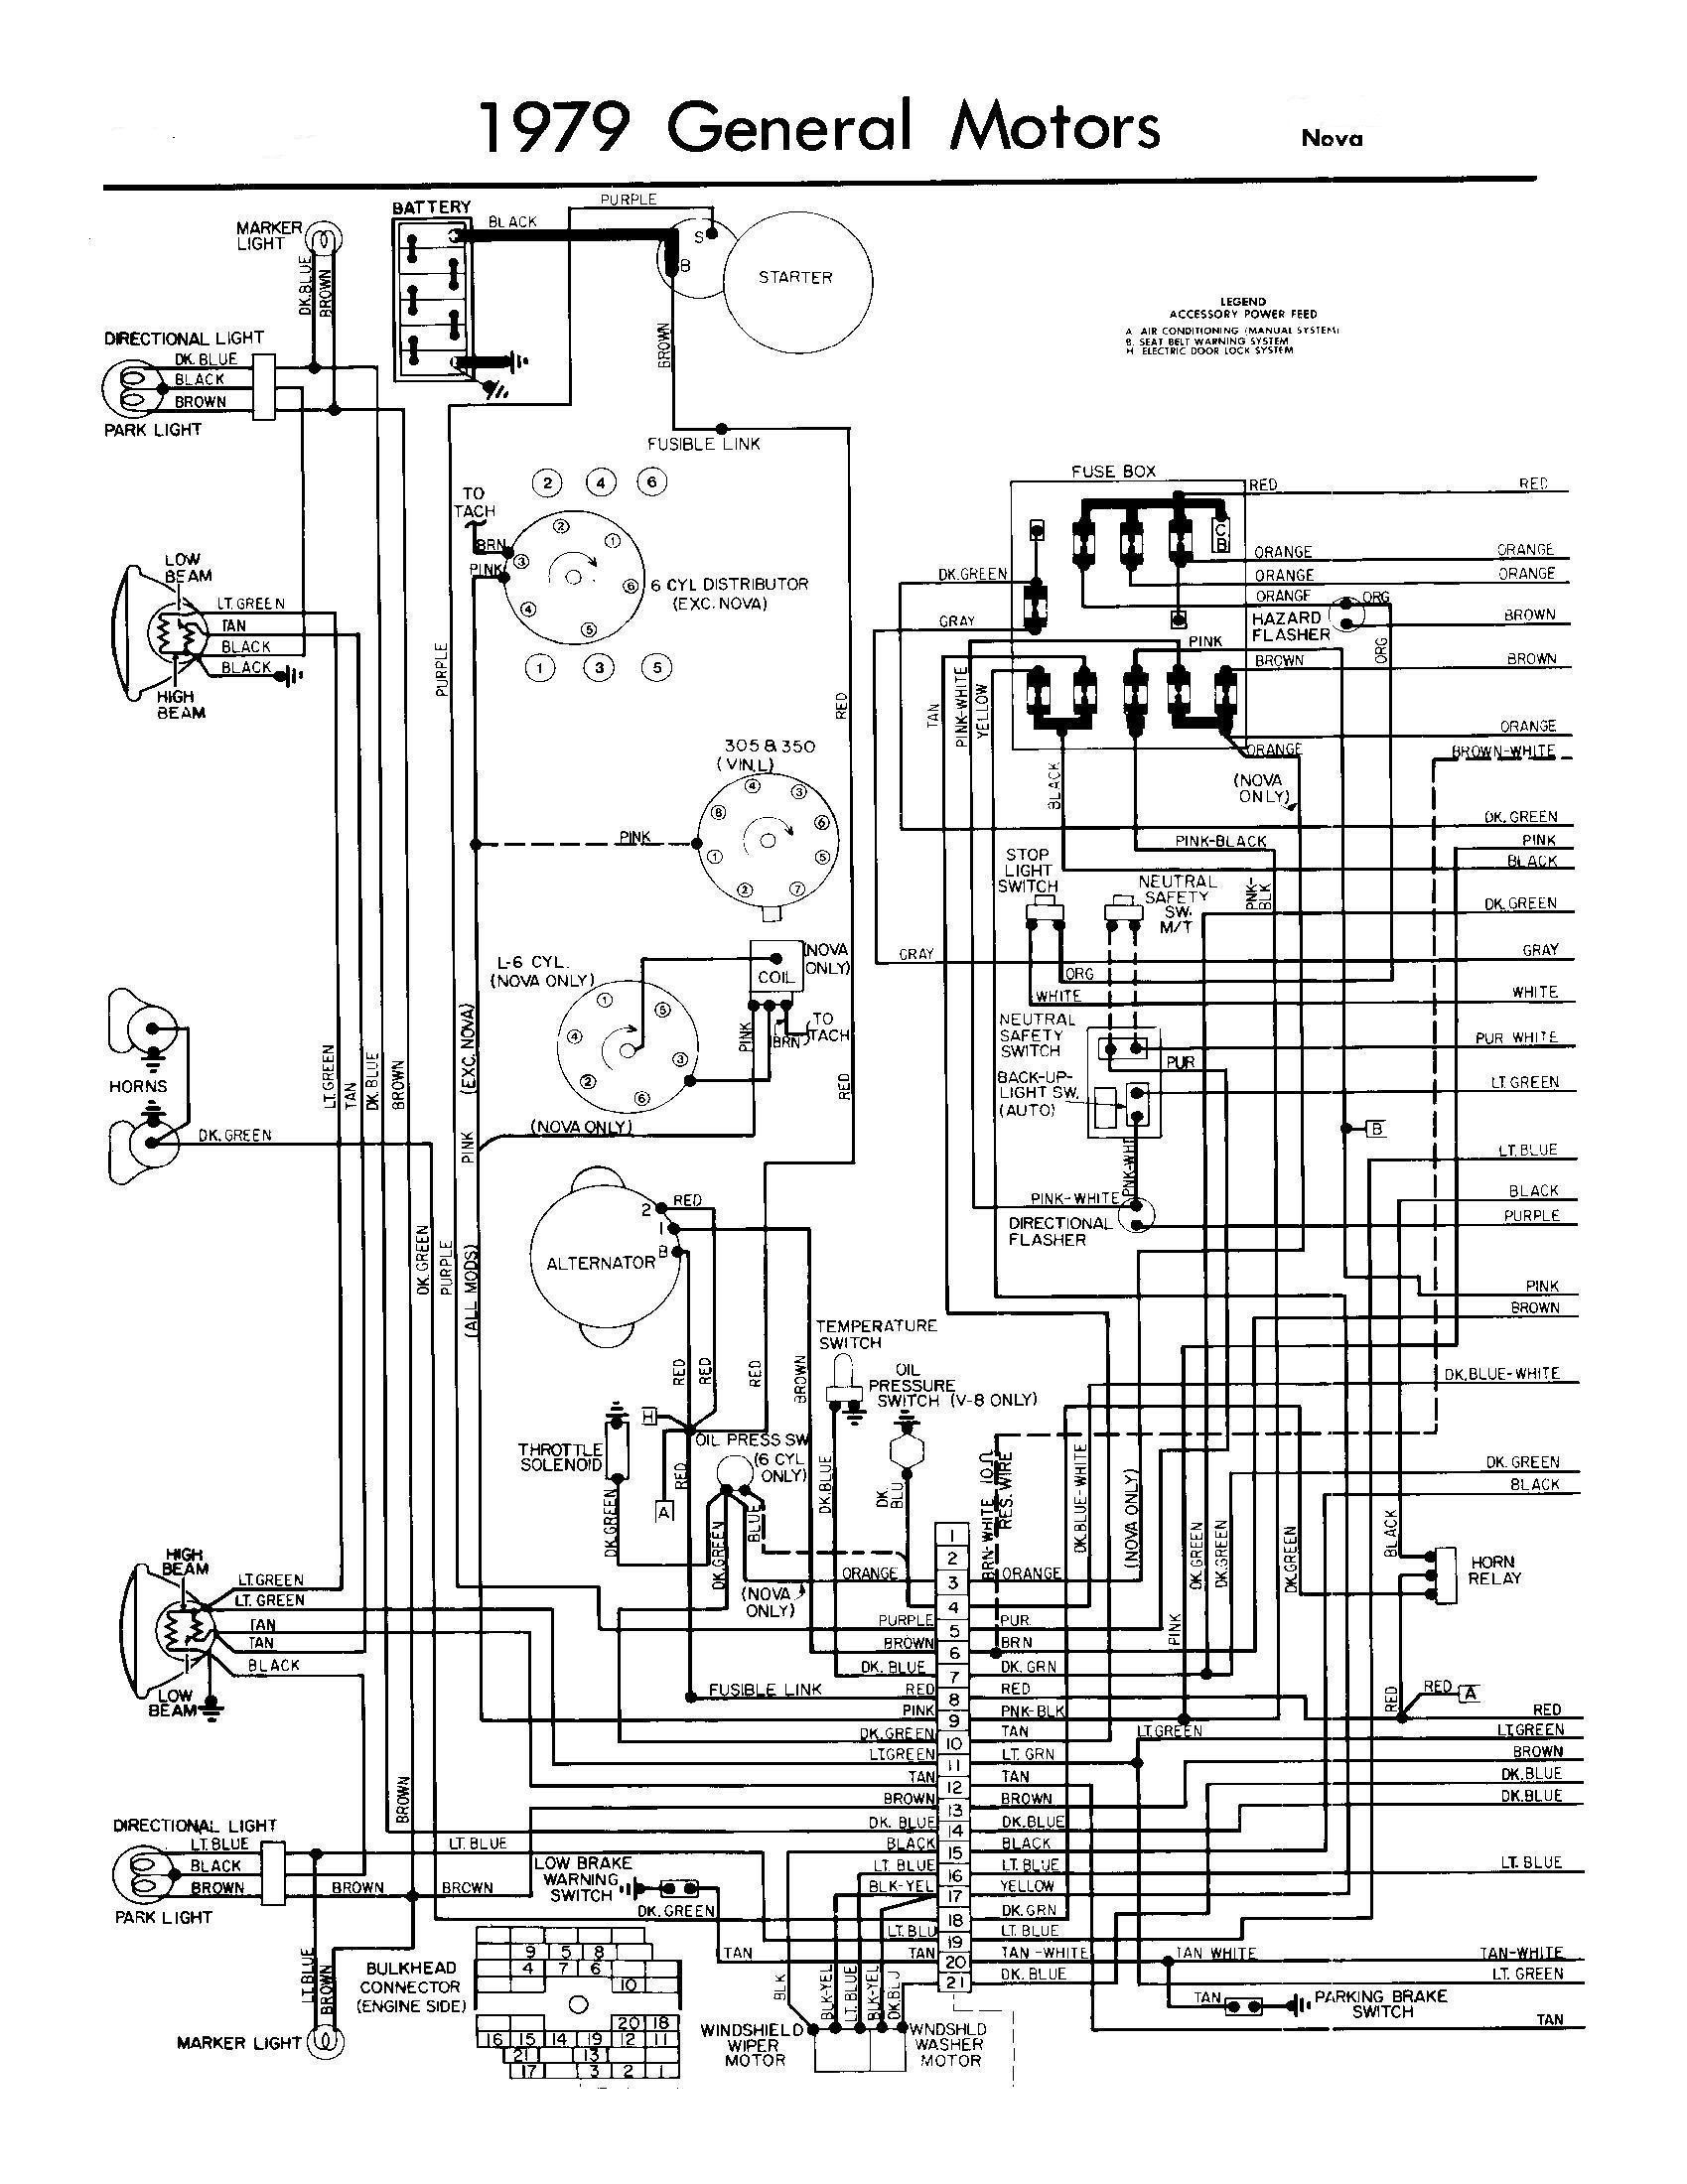 1994 Chevy Suburban Wiring Diagram Trusted Truck As Well Pictures Residential 2004 Radio